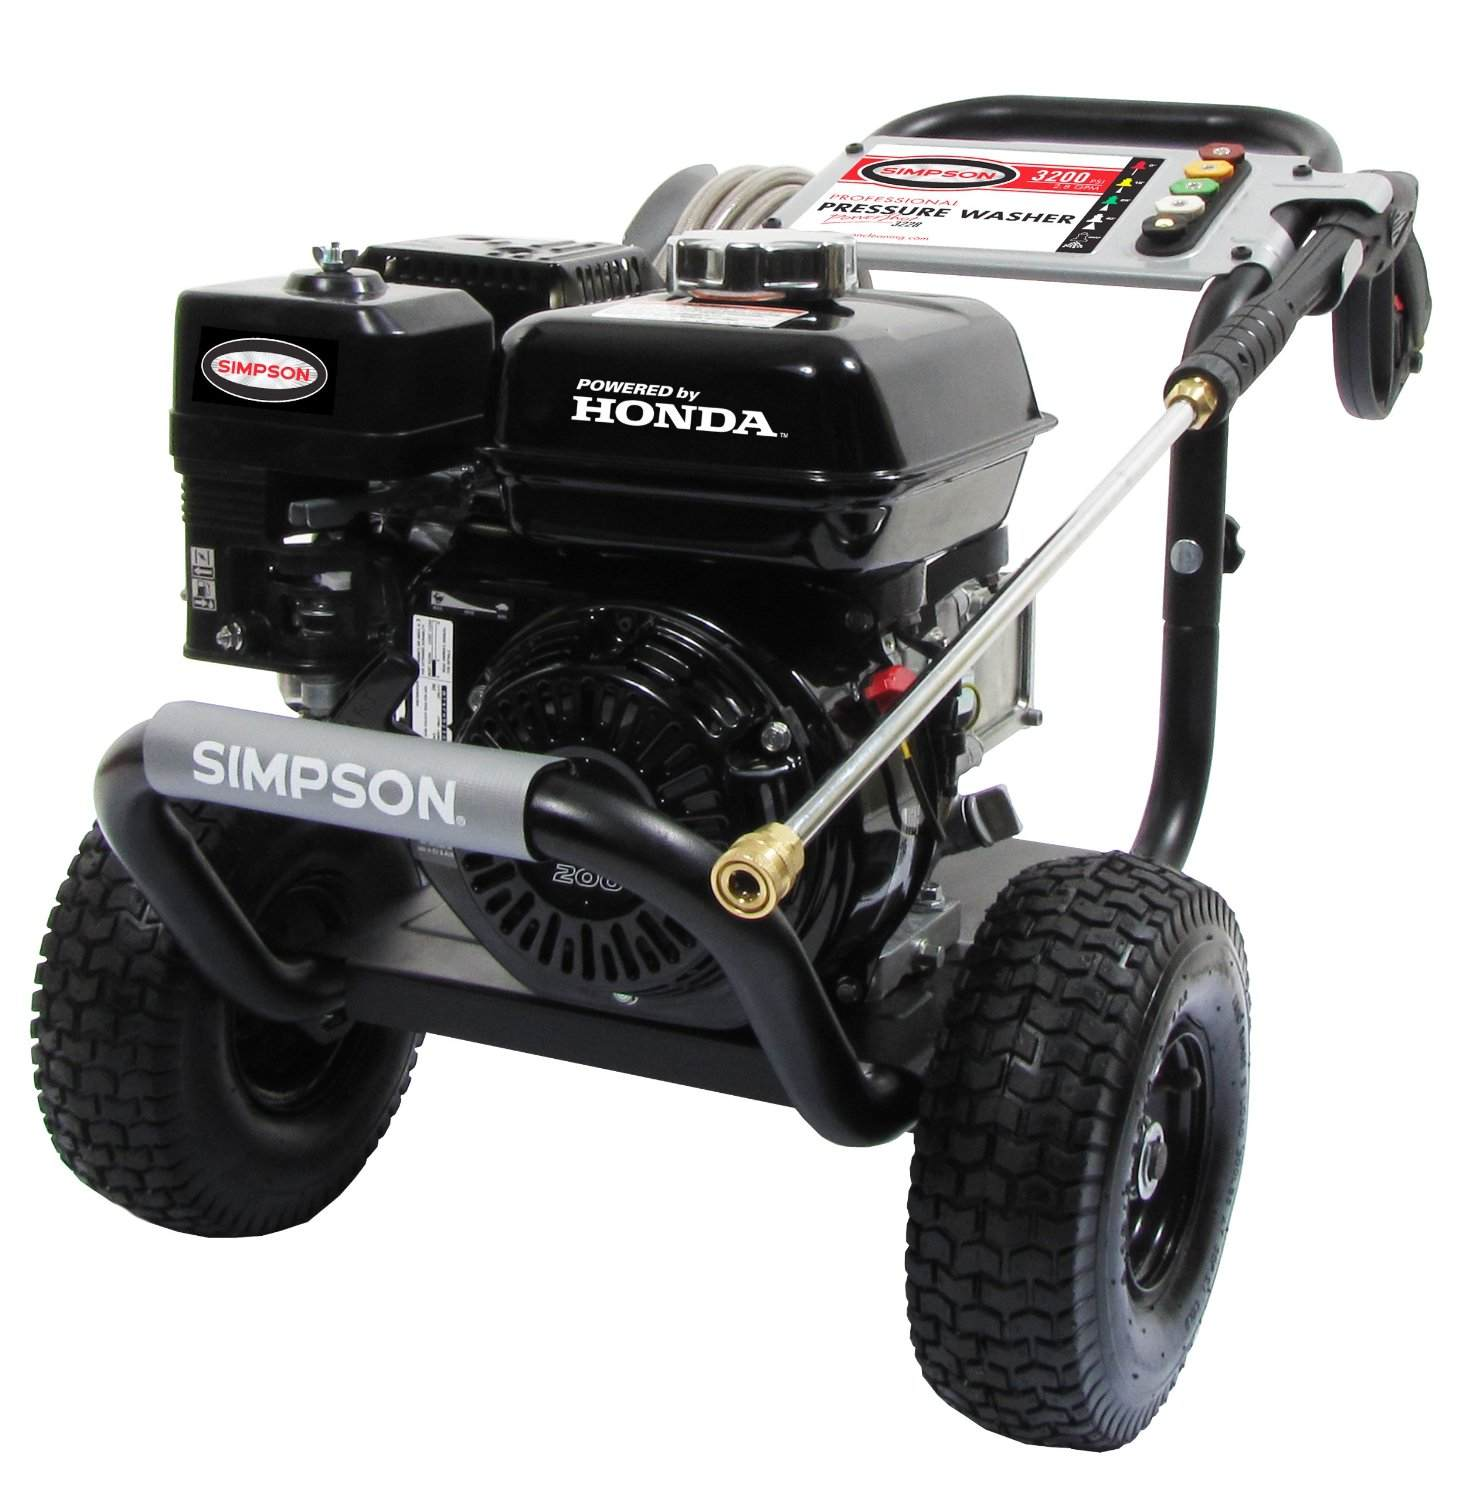 simpson powershot 3200 psi gas pressure washer